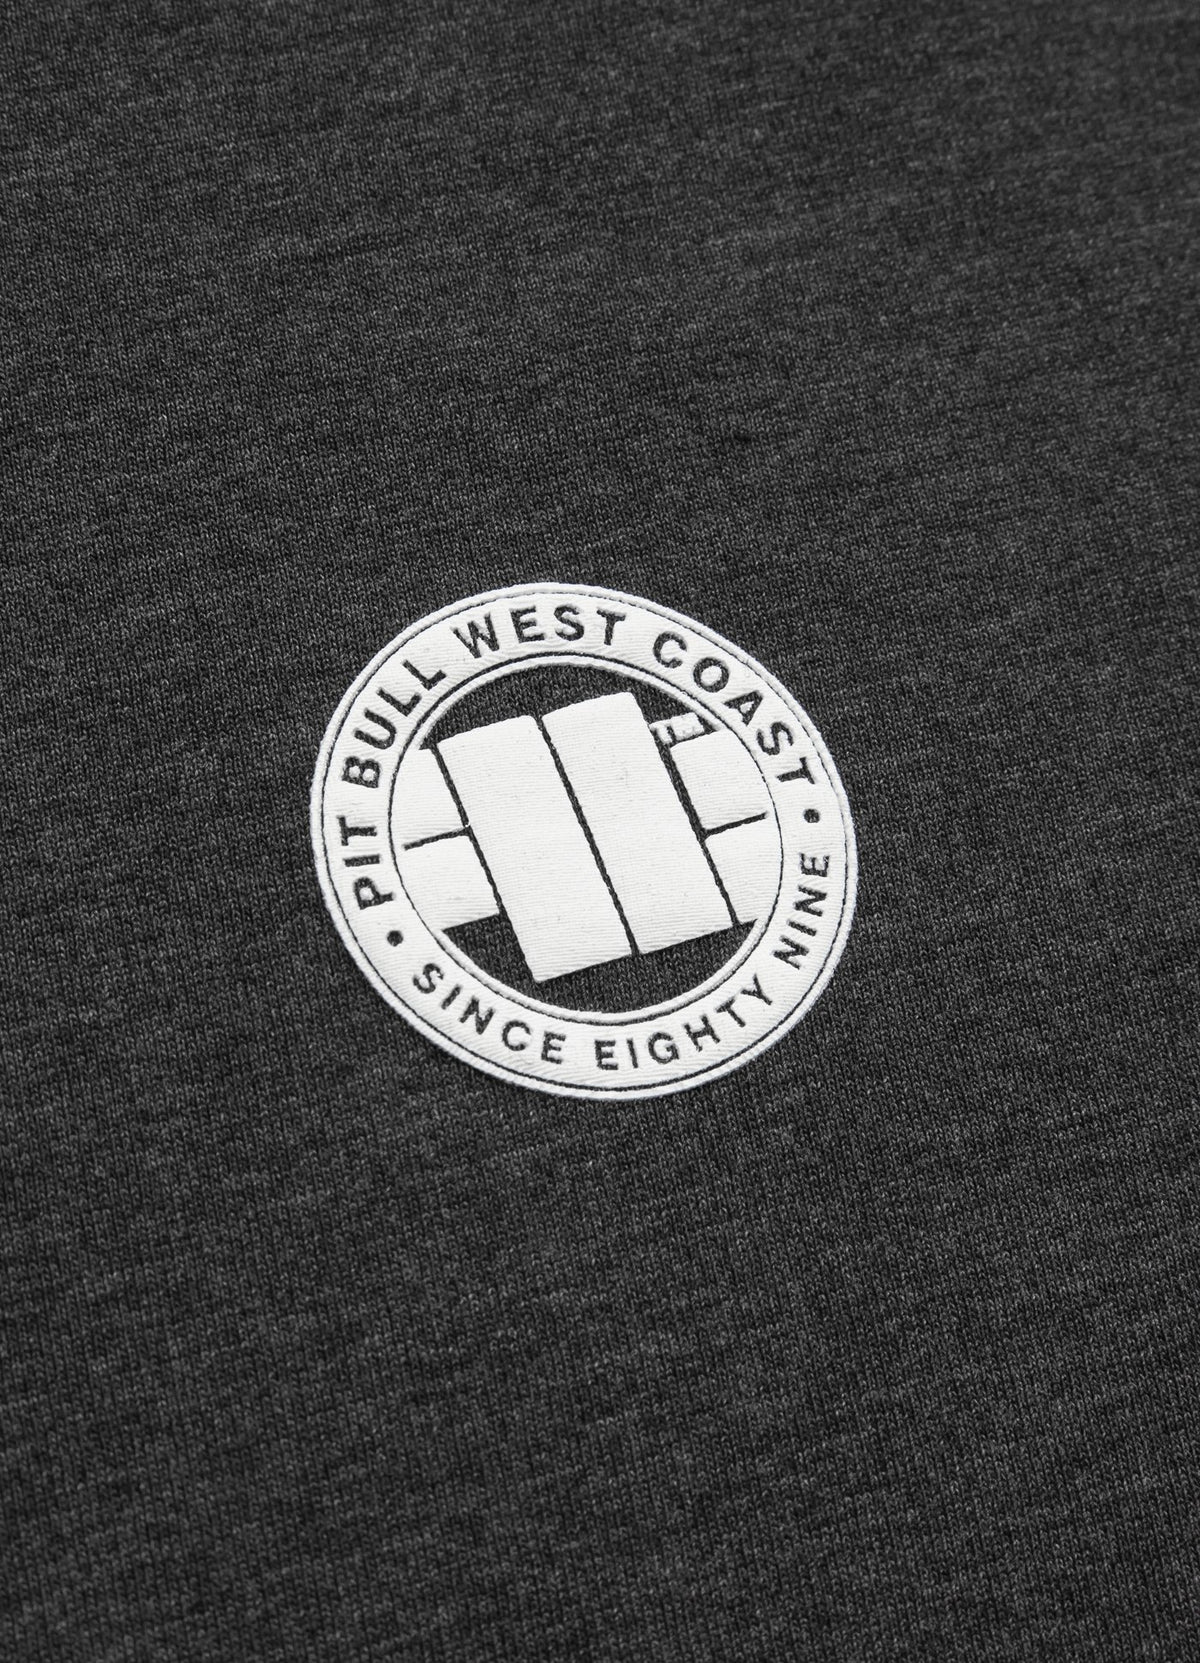 T-Shirt SMALL LOGO Charcoal Melange - Pitbull West Coast U.S.A.